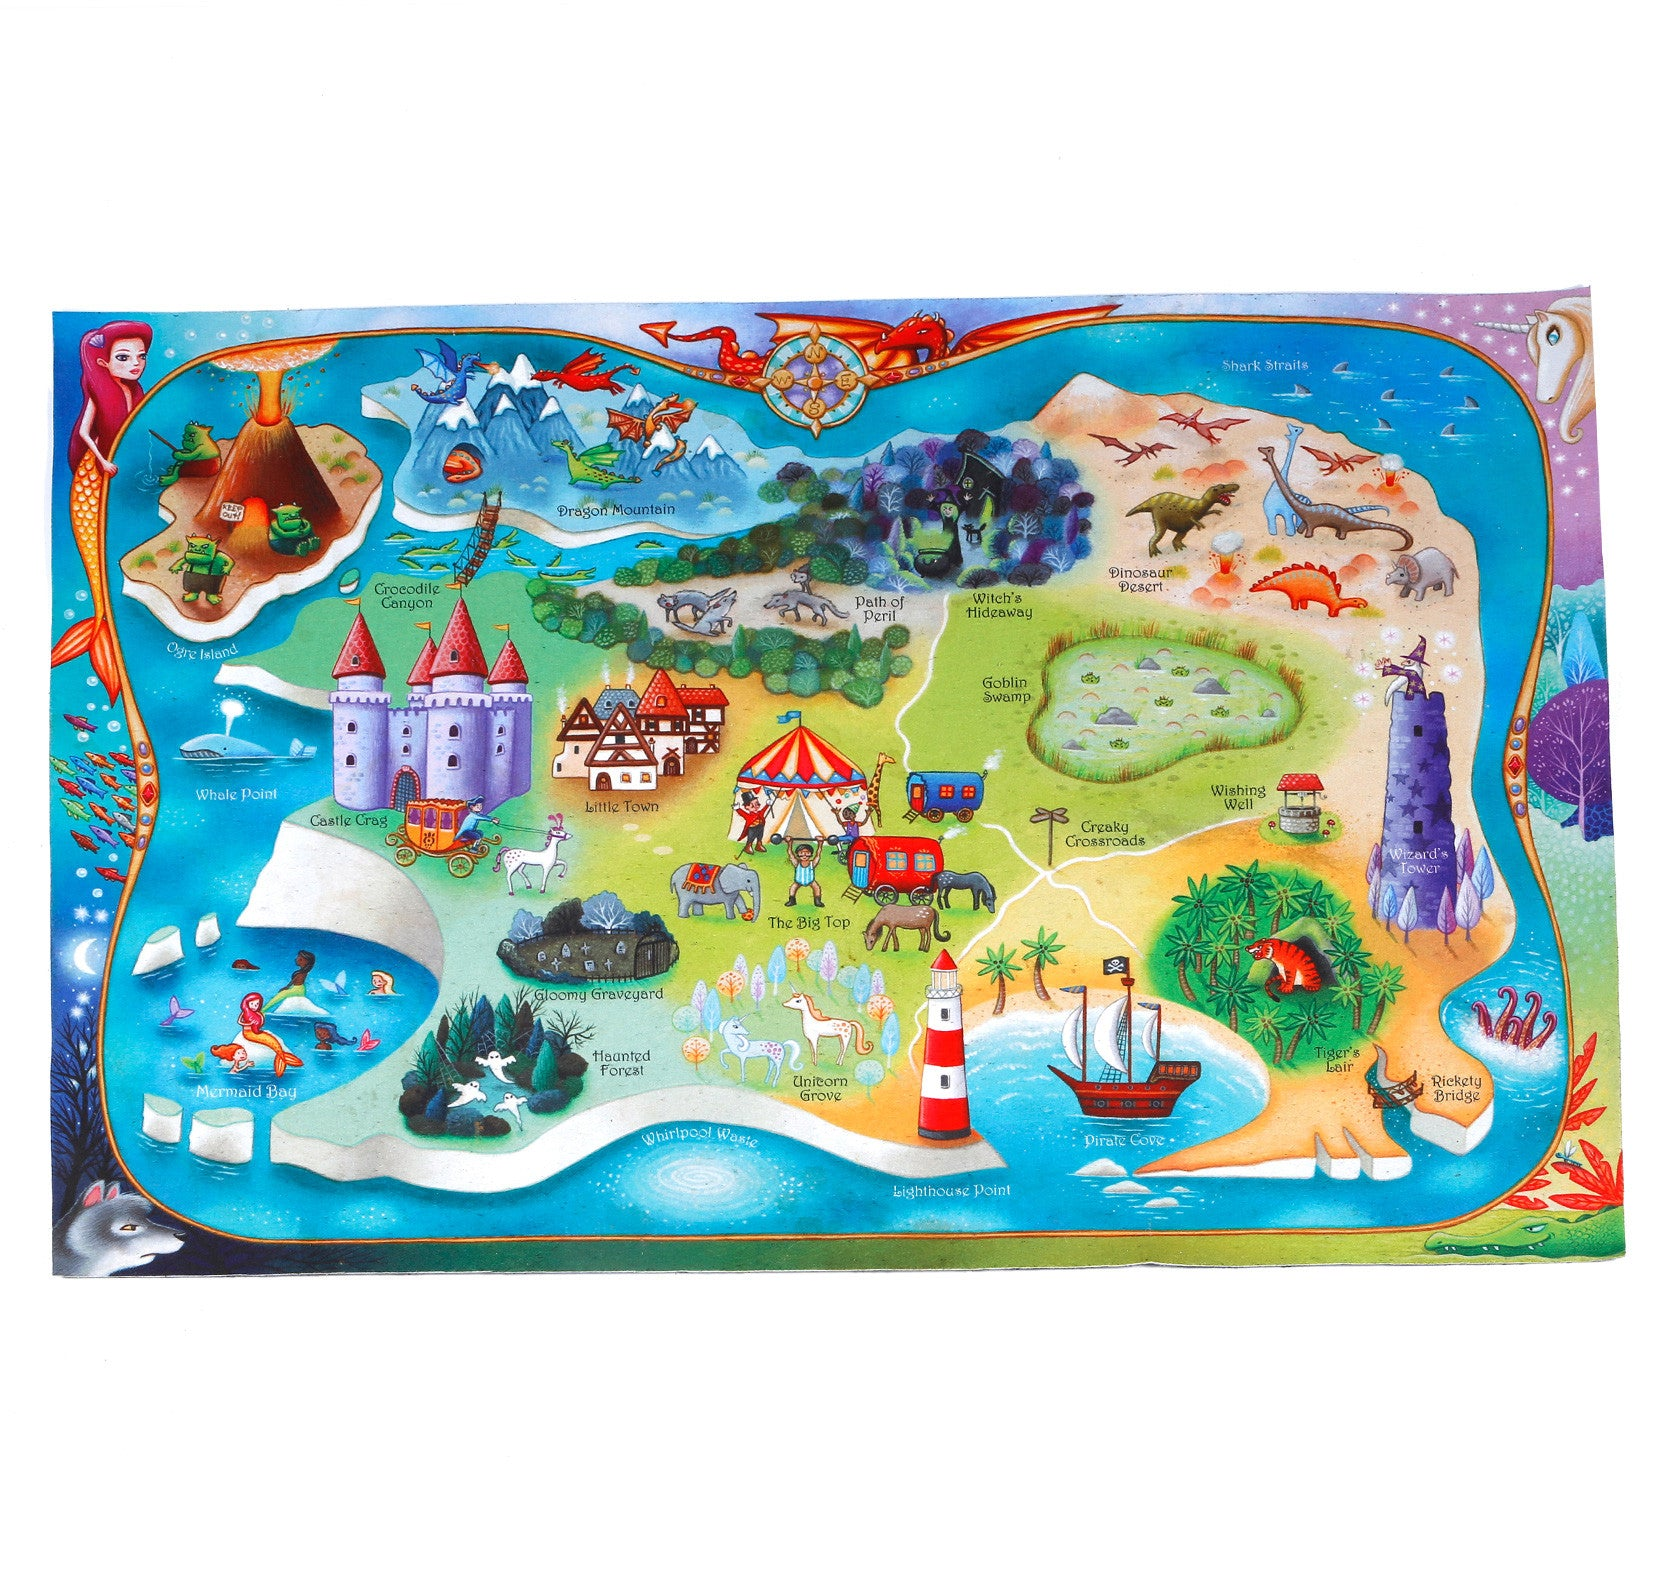 playmat listing gym thick foldable products for infants floor carry waterproof baby wa case images mat toyz kids reversible nontoxic mats with hape play mths folding usa